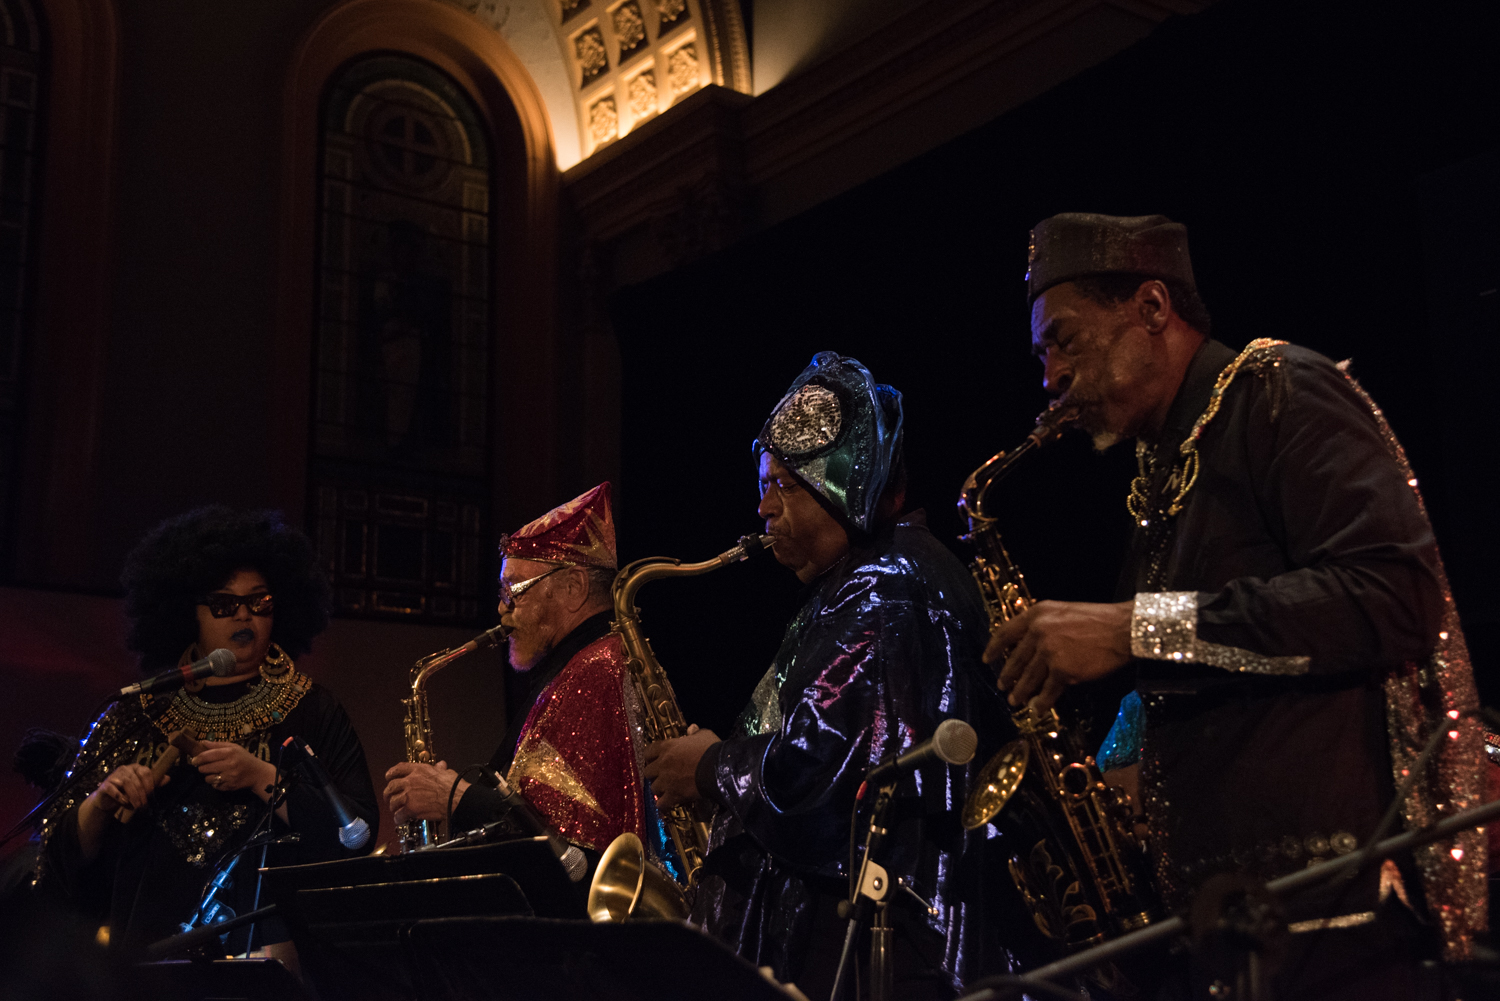 Sun Ra Arkestra directed by Marshall Allen - Tara Middleton (voclas), Marshall Allen (alto sax), James Stewart (tenor sax) and Knoel Scott (tenor sax) performing at Judson Church, January 16.